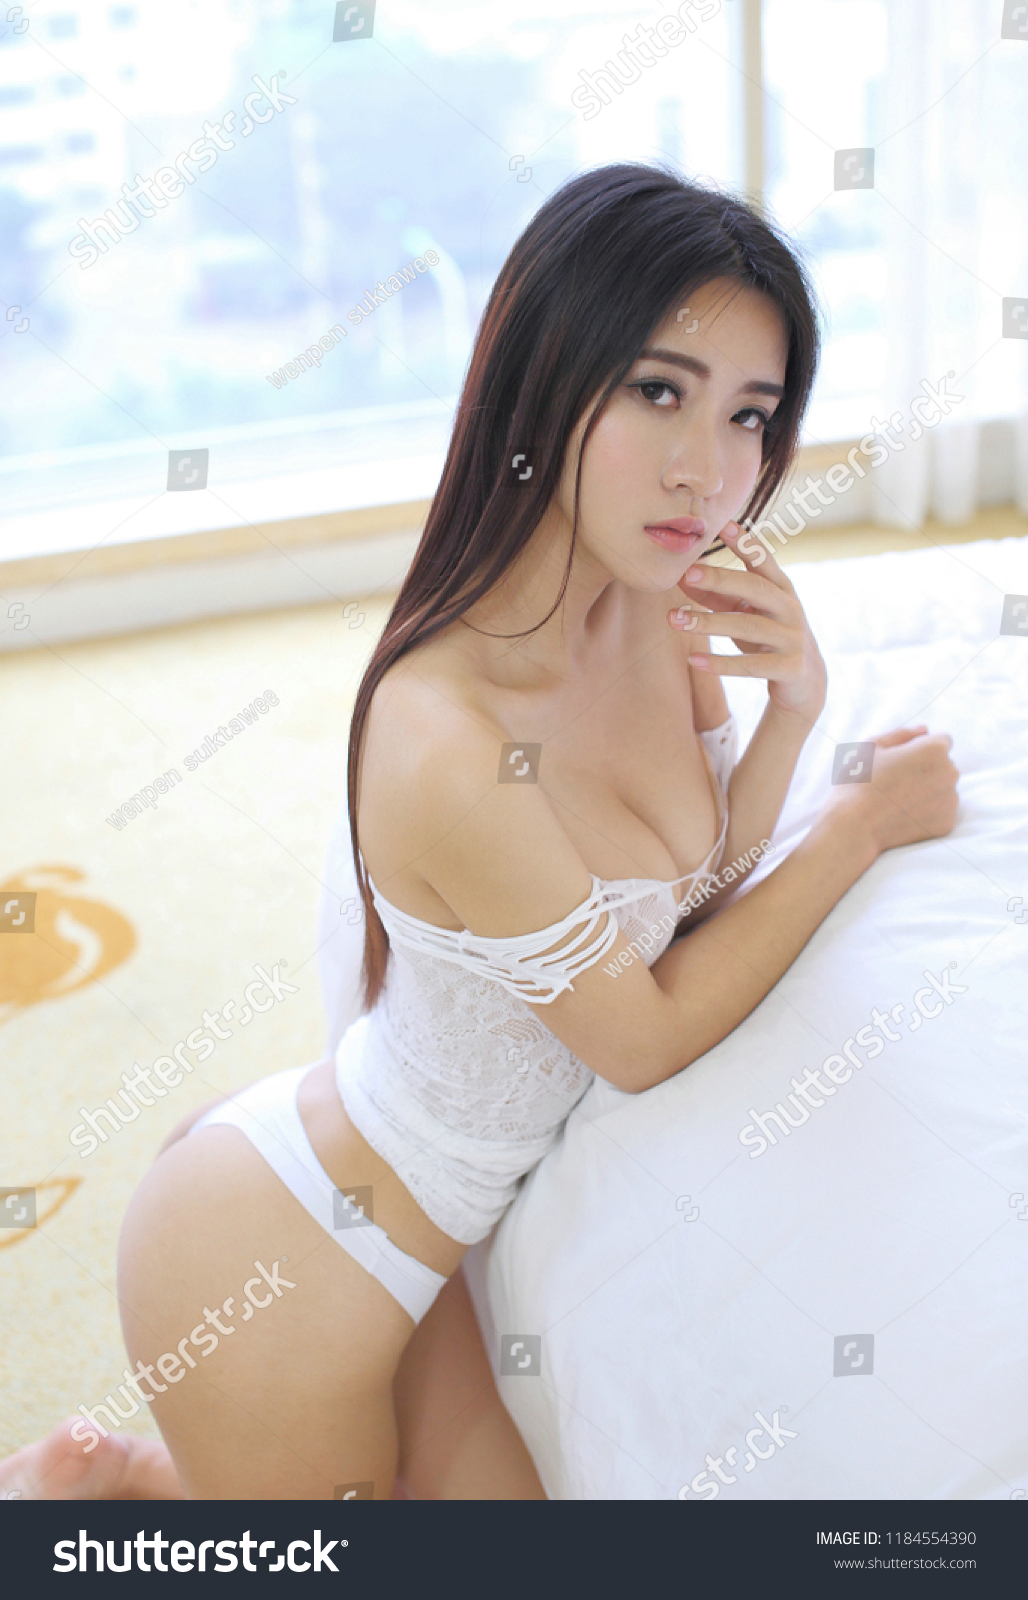 Opinion you sexy nude asian girls art theme, very